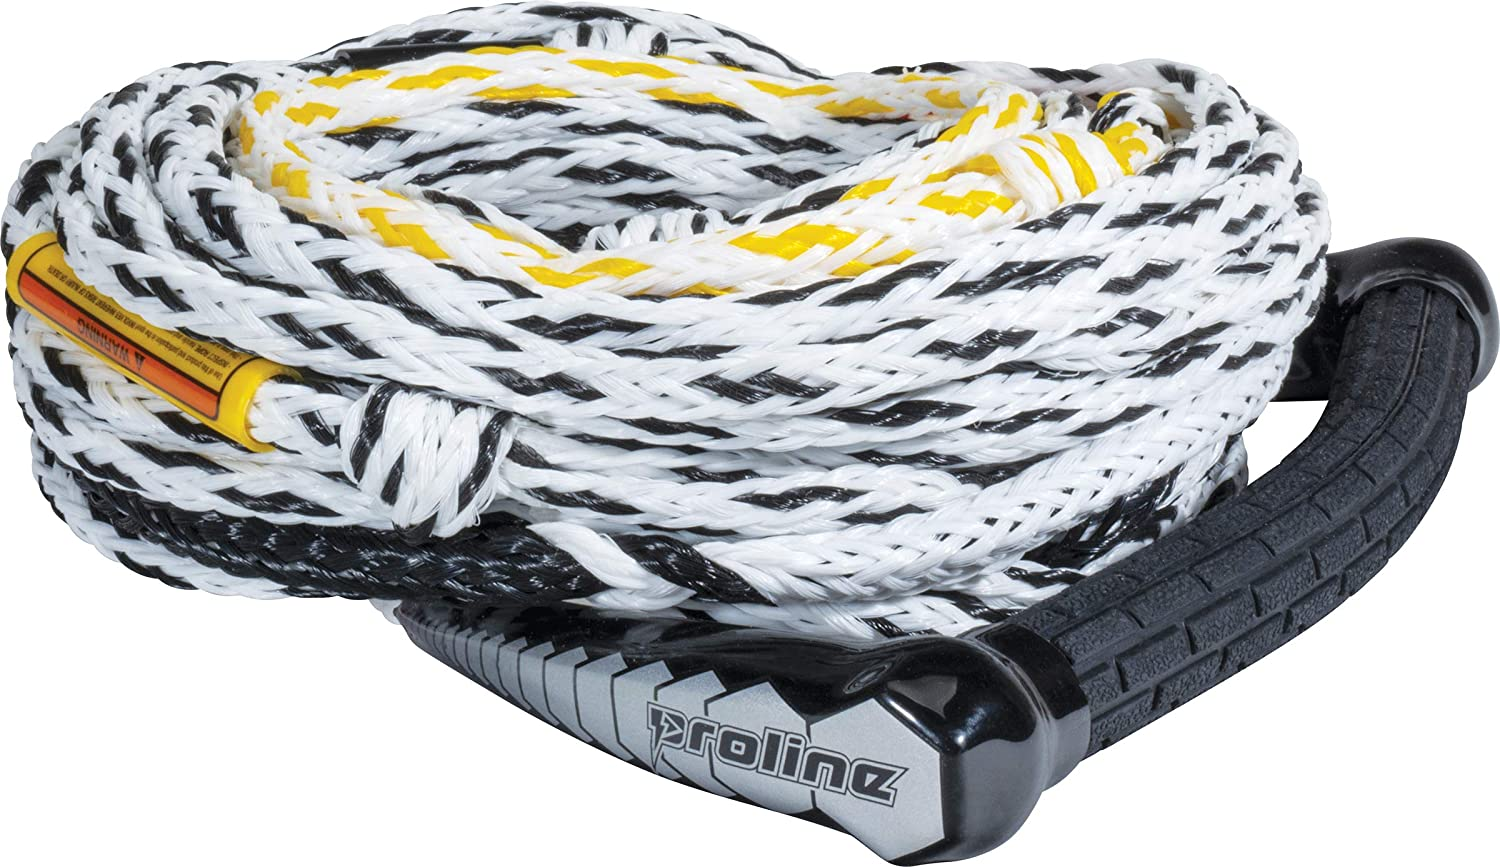 PROLINE Waterski Handle and 75' - 5 Section Rope Package, 13' Tractor Grip Radius(Bent) Handle